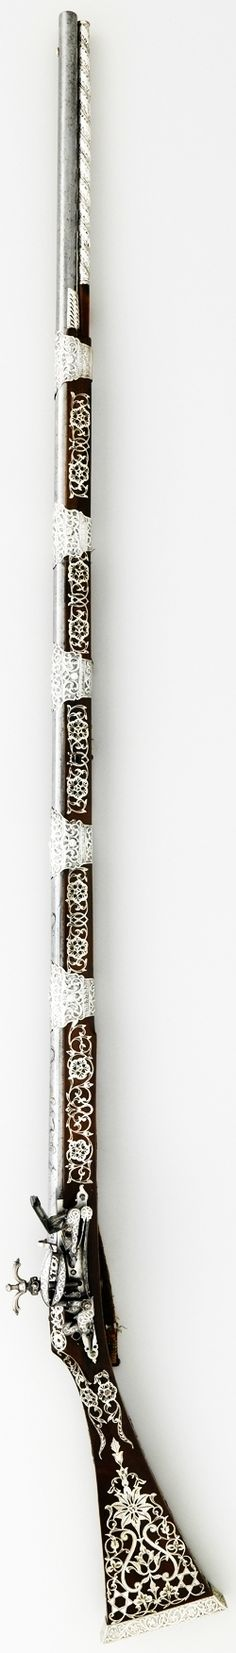 North African (probably Algeria) miquelet gun, dated 1224 (A.D. 1809) belonging to Ali Pasha, steel, wood, silver, textile, L. 67 in. (170.2 cm), Met Museum.